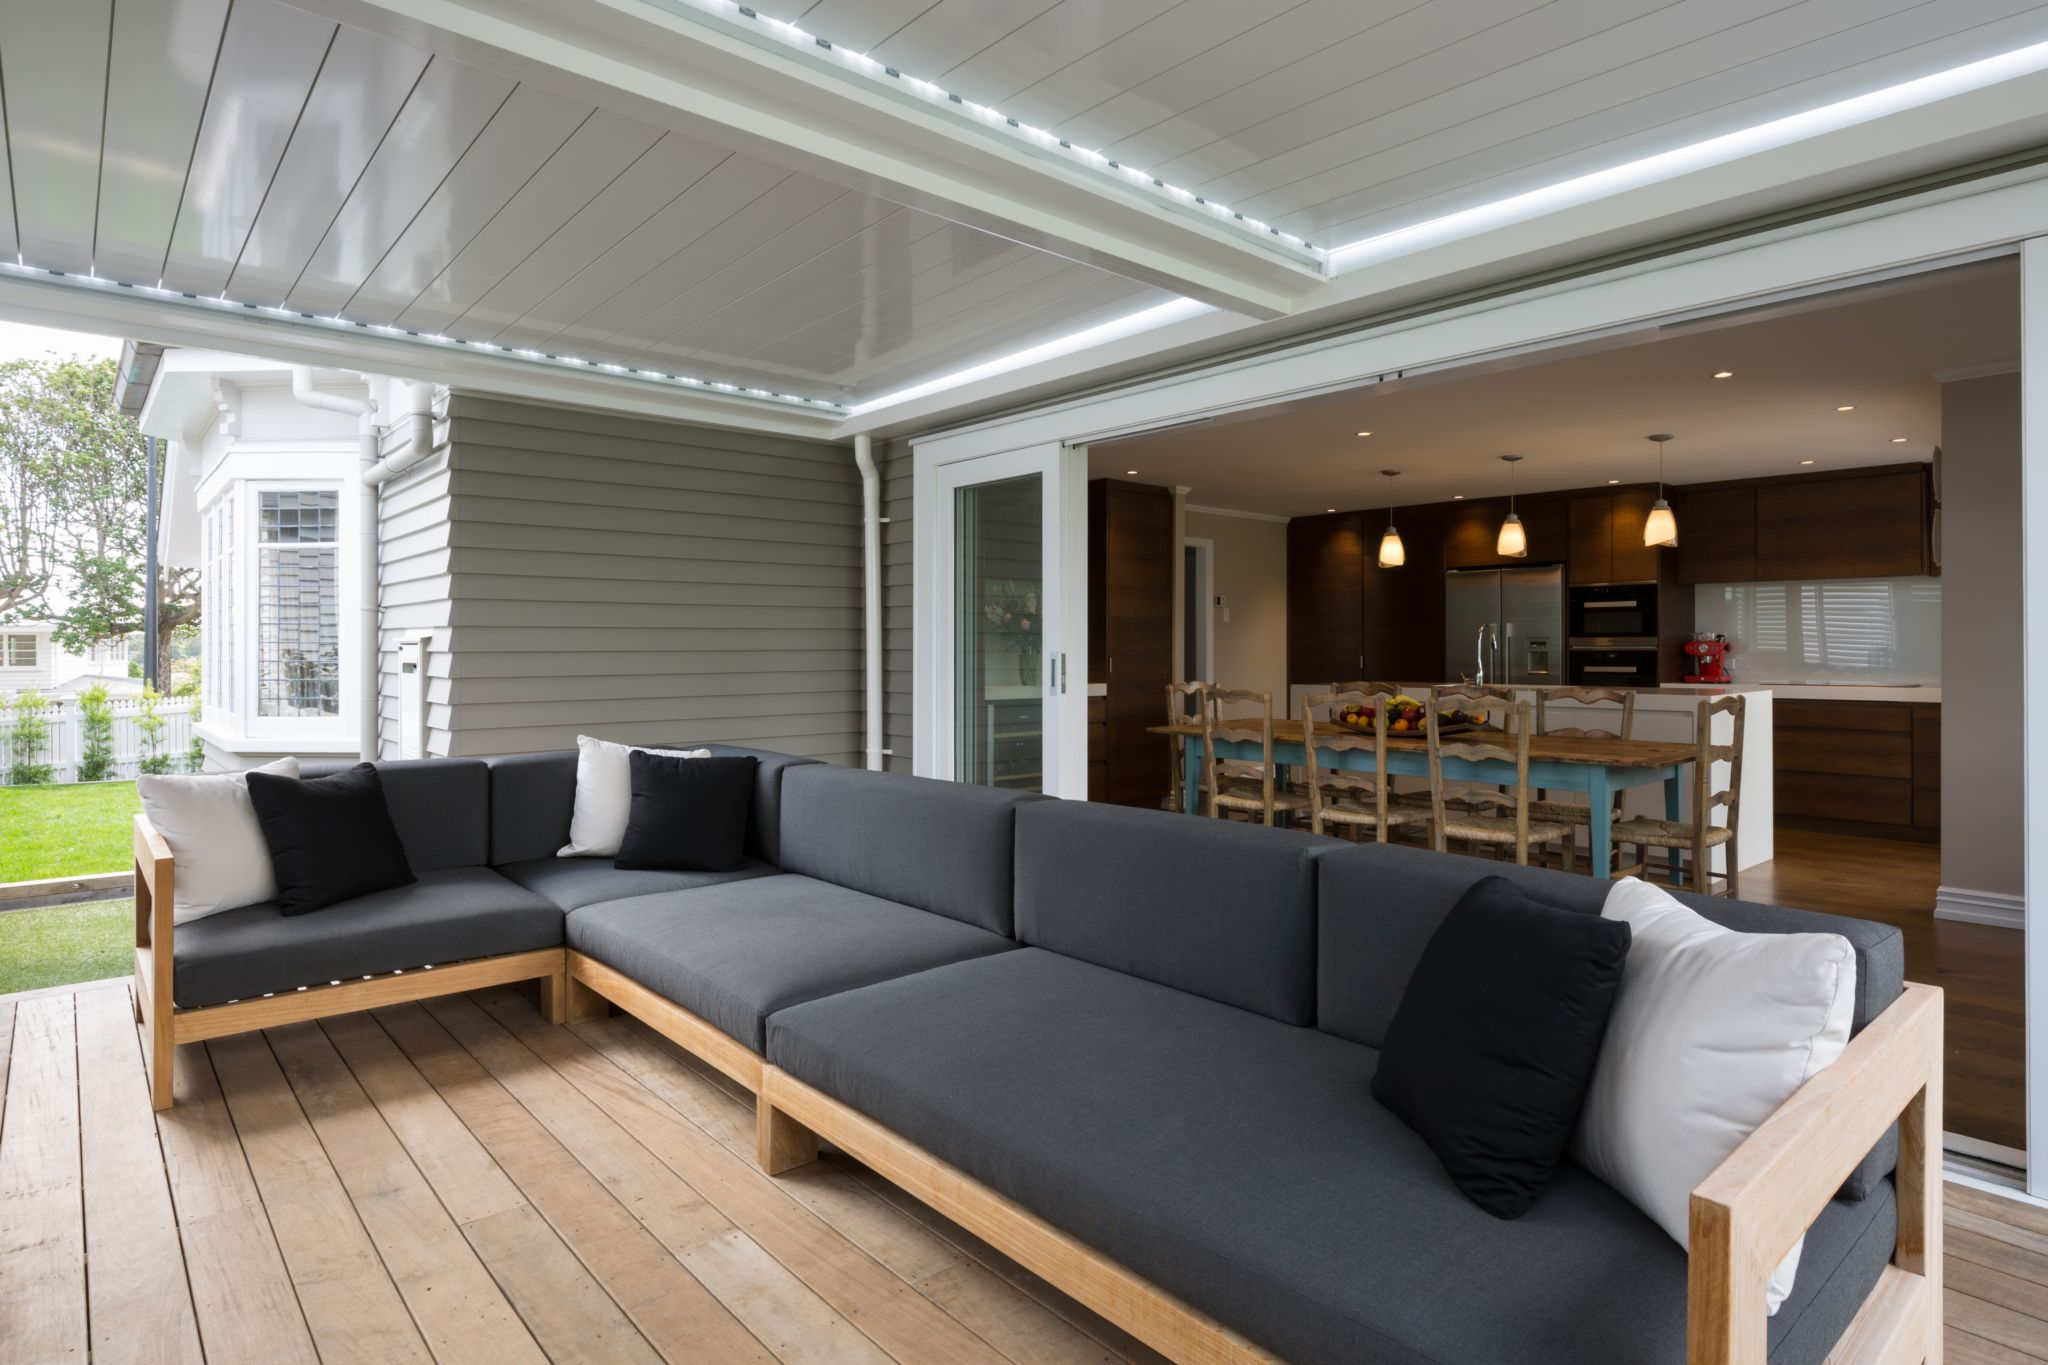 20 Elegant Outdoor Room Nz Ideas Outdoorroom Encouraged In Order To The Website In This Particular P Outdoor Room Decor Outdoor Living Outdoor Living Space